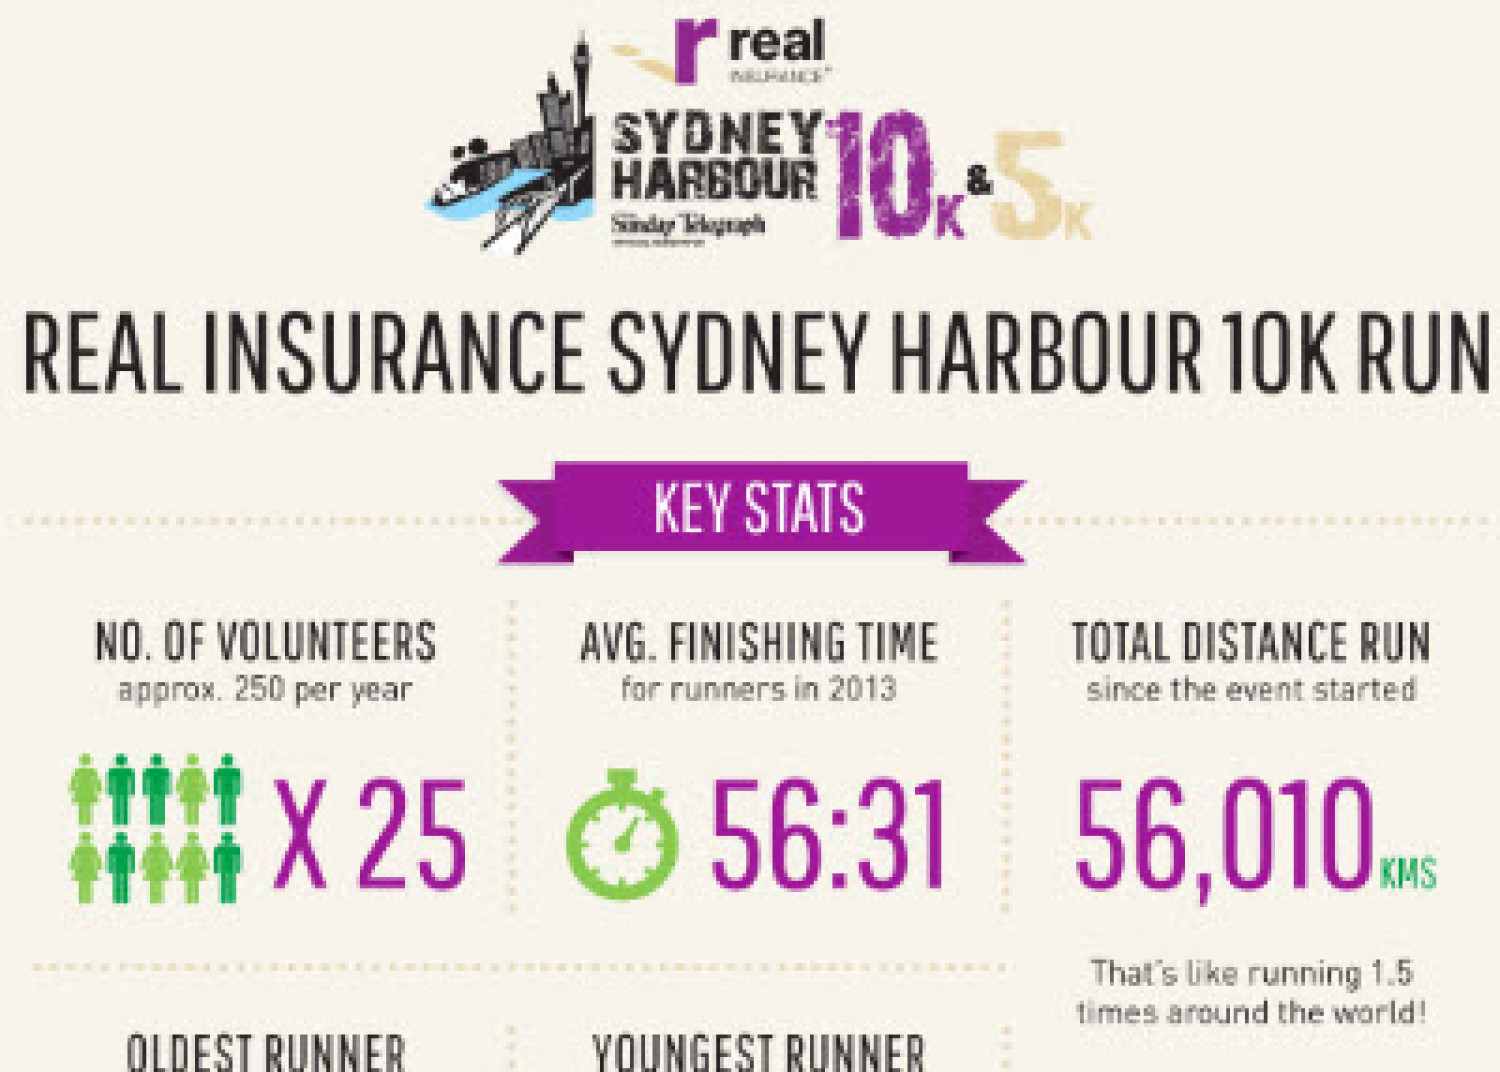 Real Insurance Sydney Harbour 10k Run Infographic